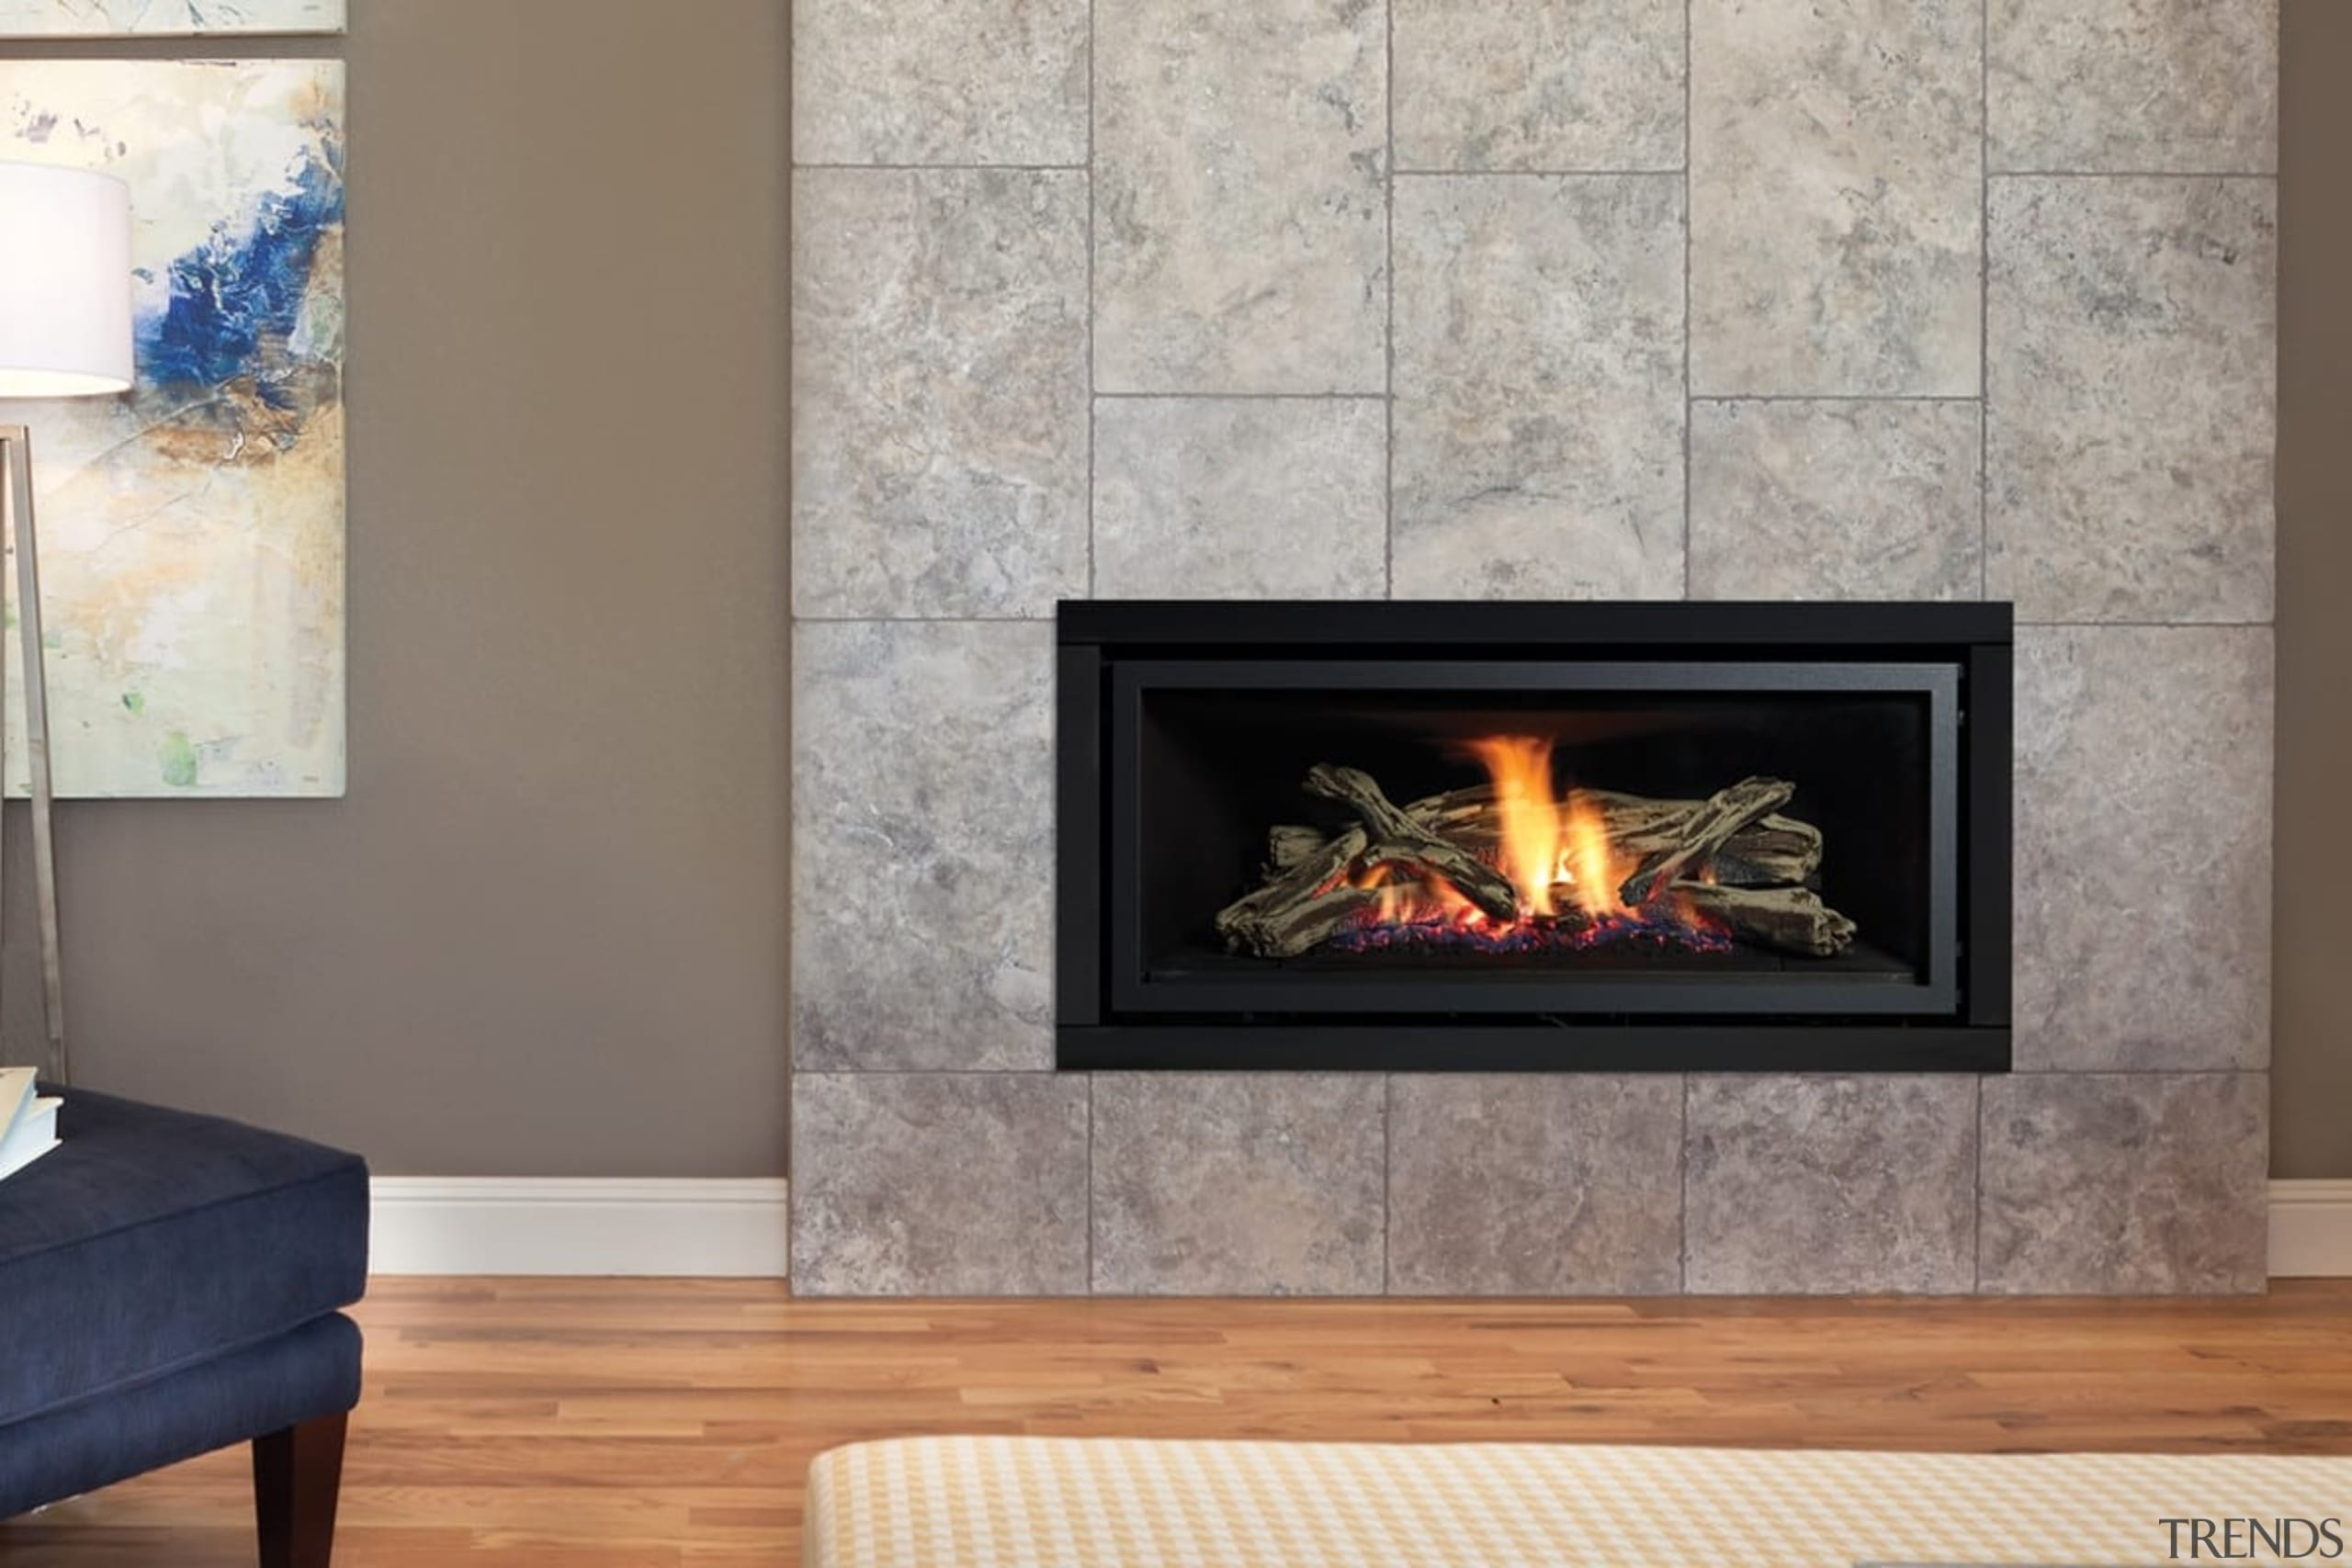 Indoor Gas Fires - fireplace | hearth | fireplace, hearth, heat, home appliance, wood burning stove, gray